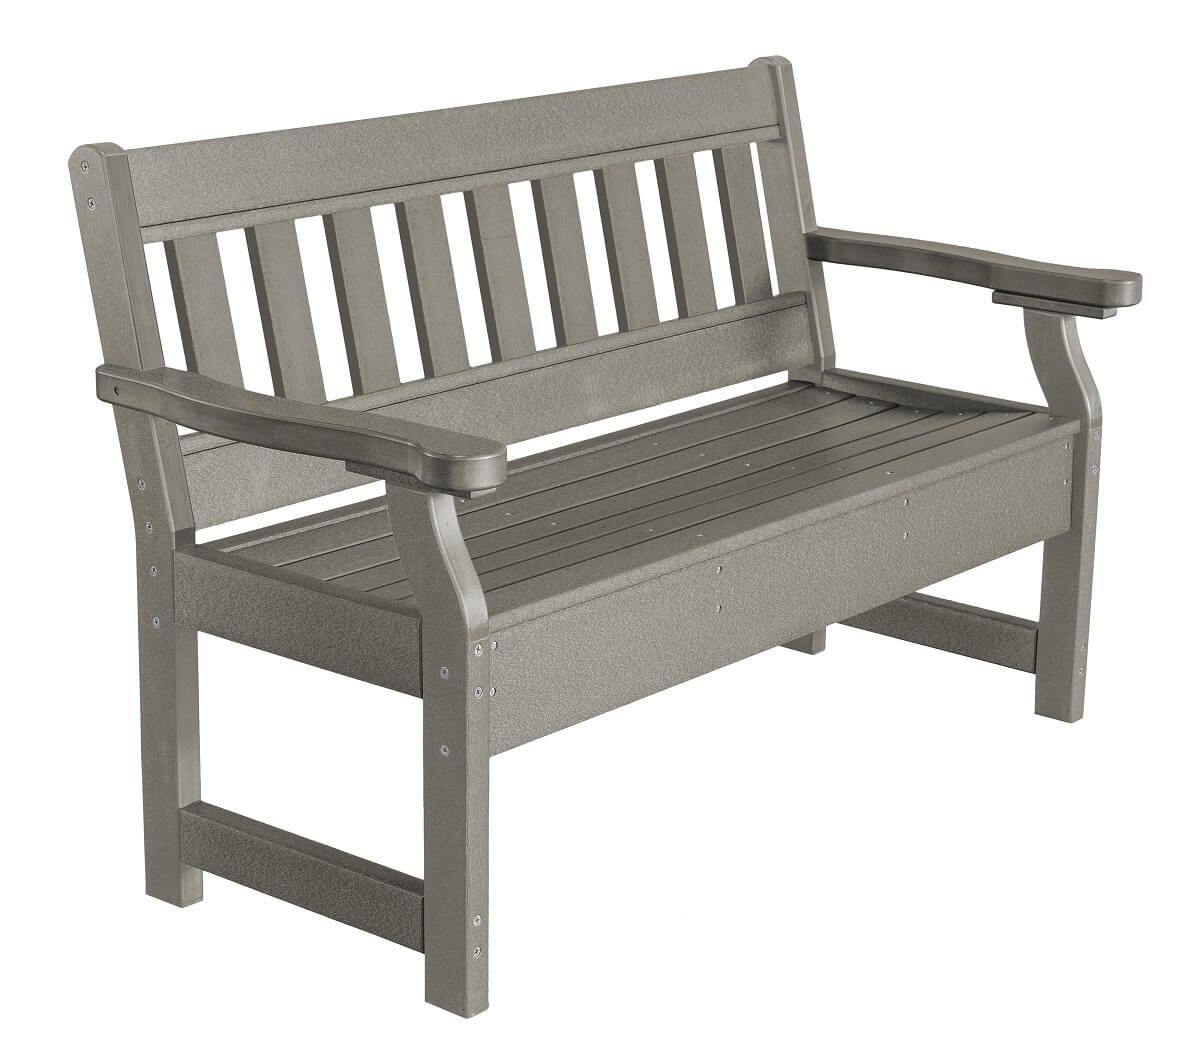 Light Gray Aden Garden Bench